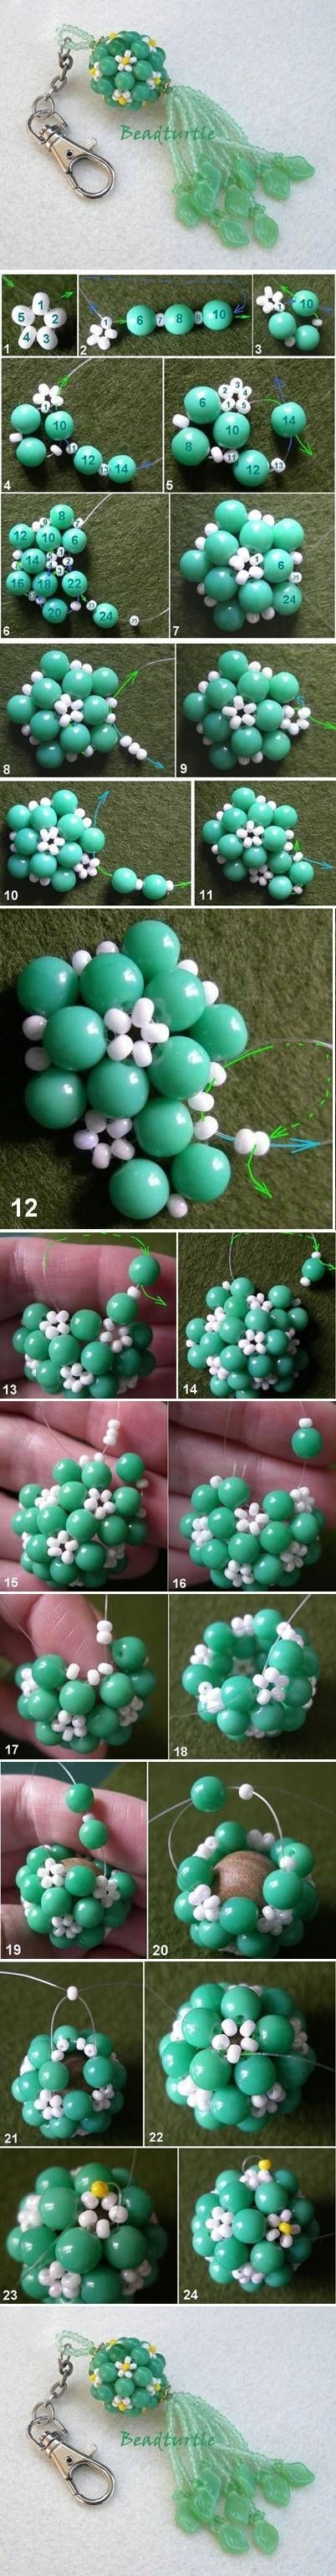 DIY Beaded Keychain Pictures, Photos, and Images for Facebook, Tumblr, Pinterest, and Twitter